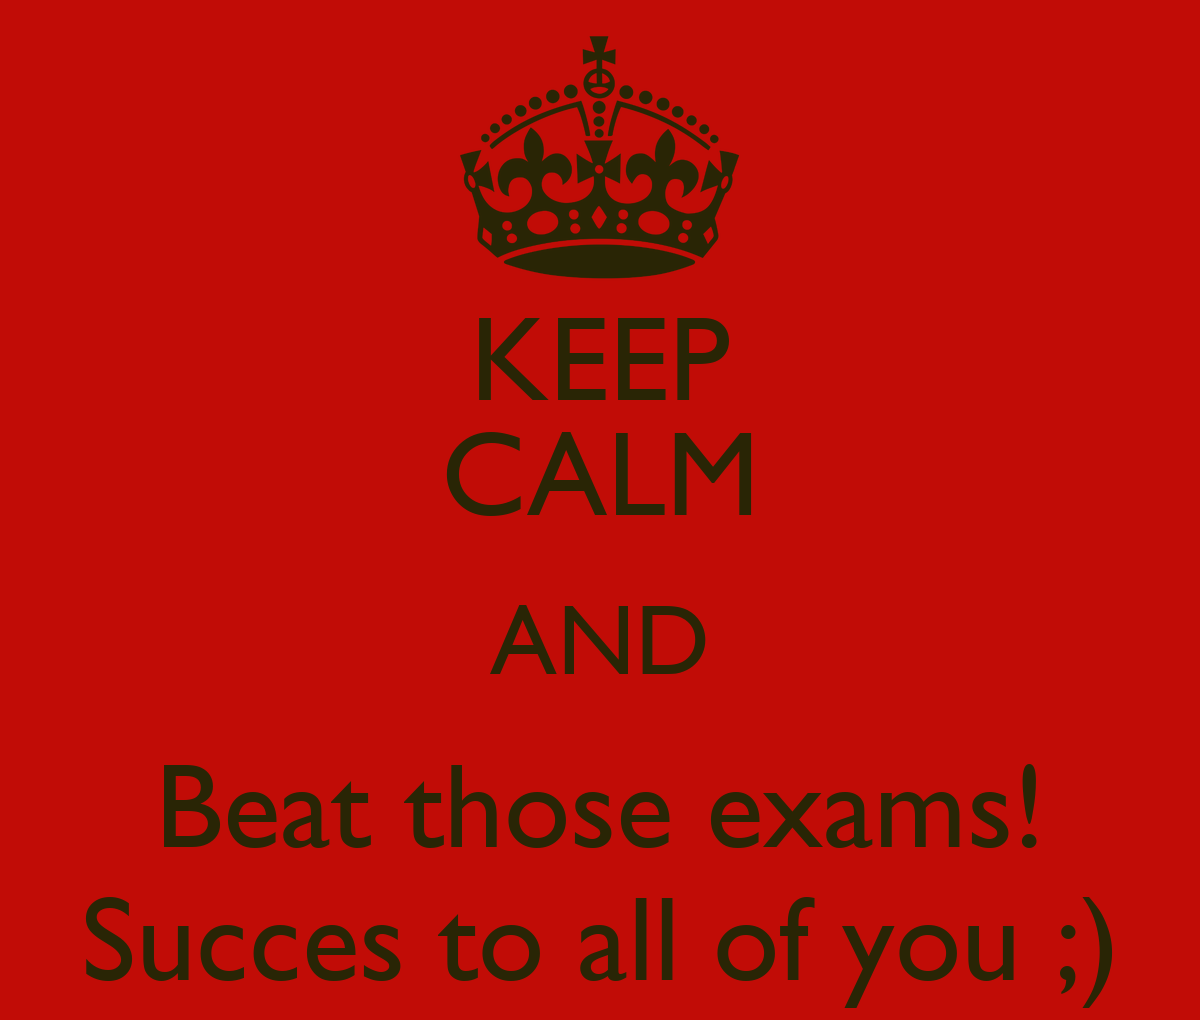 KEEP CALM AND Beat those exams! Succes to all of you ...